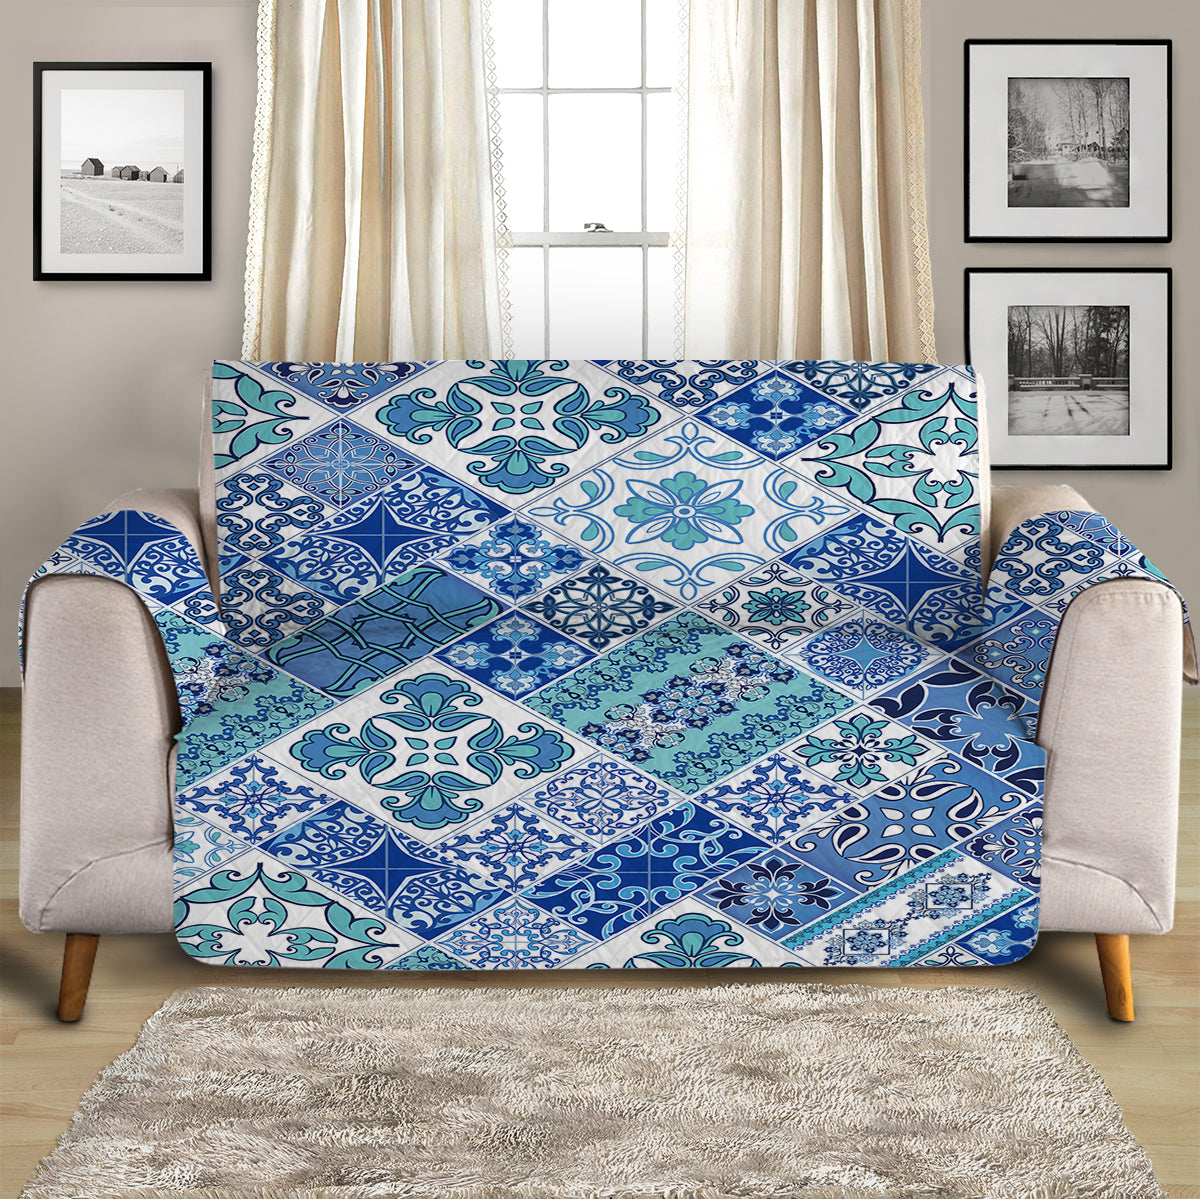 Coastal Mosaic Sofa Cover